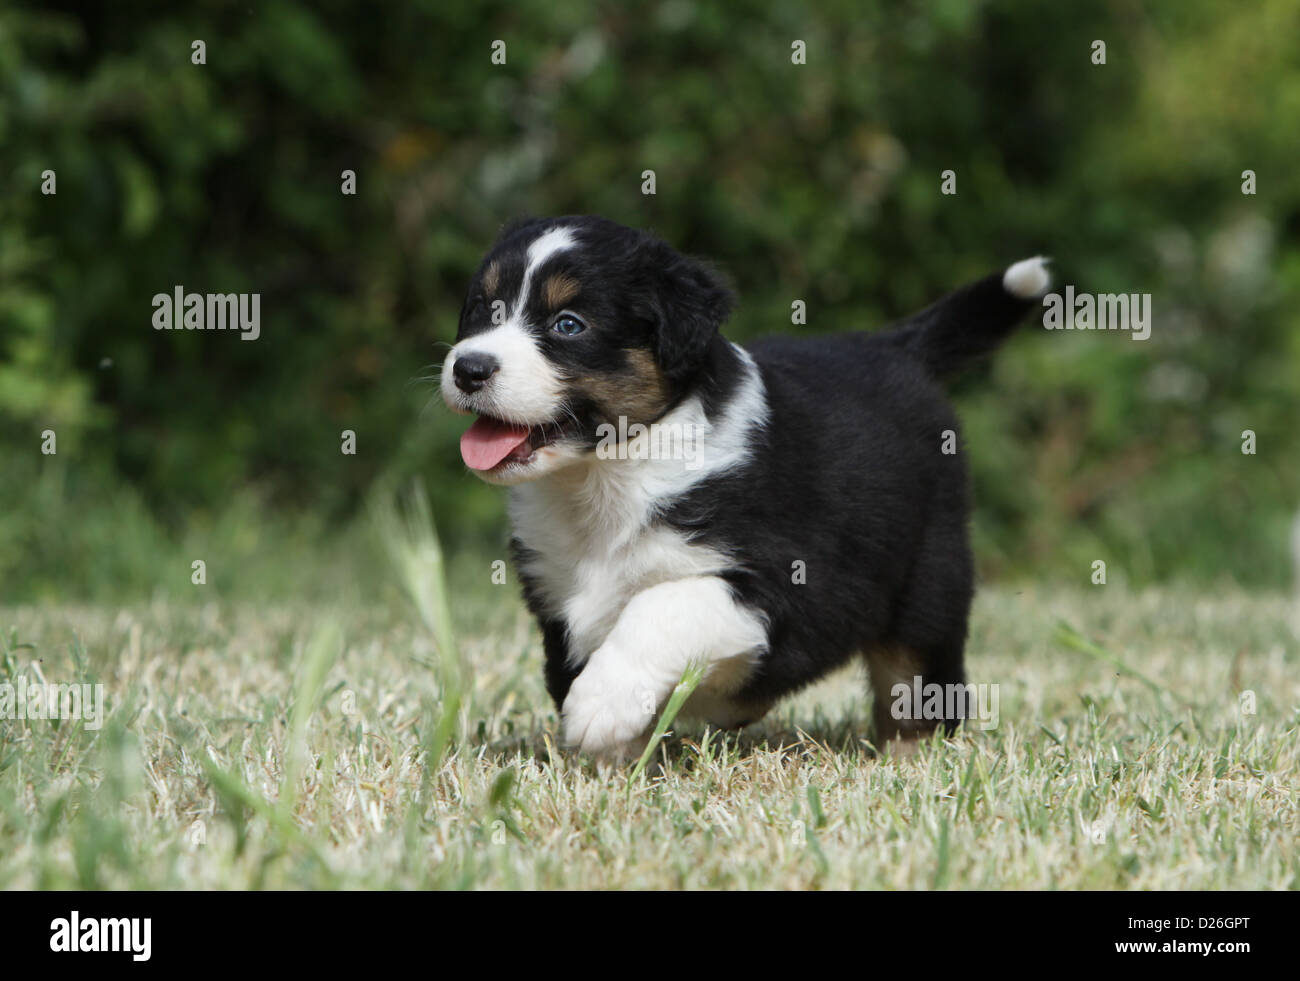 Dog Australian Shepherd Aussie Puppy Tricolor Black Walking In A Stock Photo Alamy